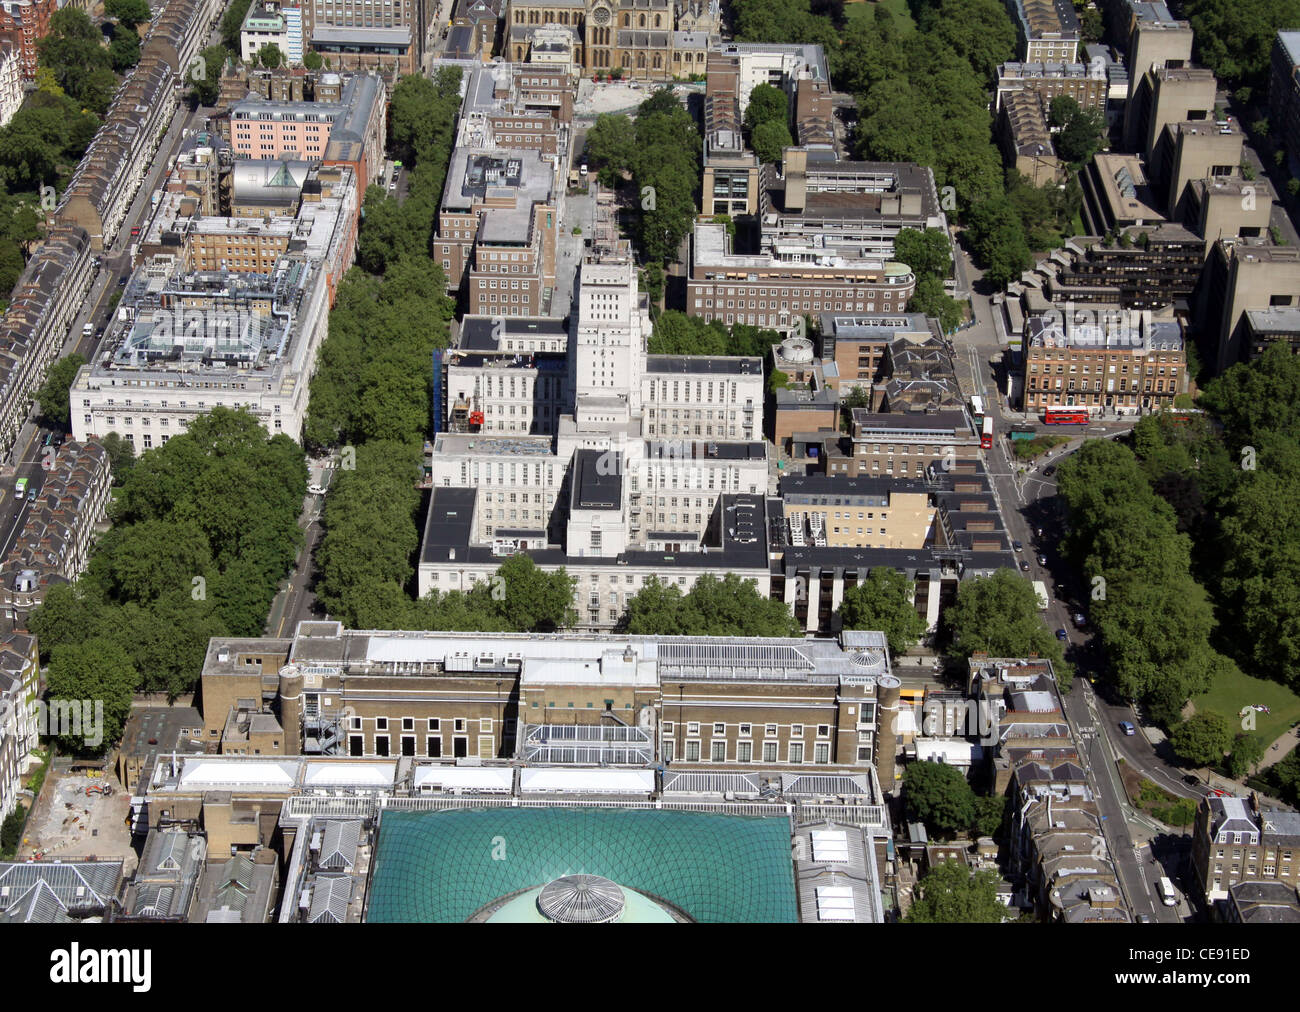 Aerial image of The University of London, Bloomsbury, London WC1 - Stock Image